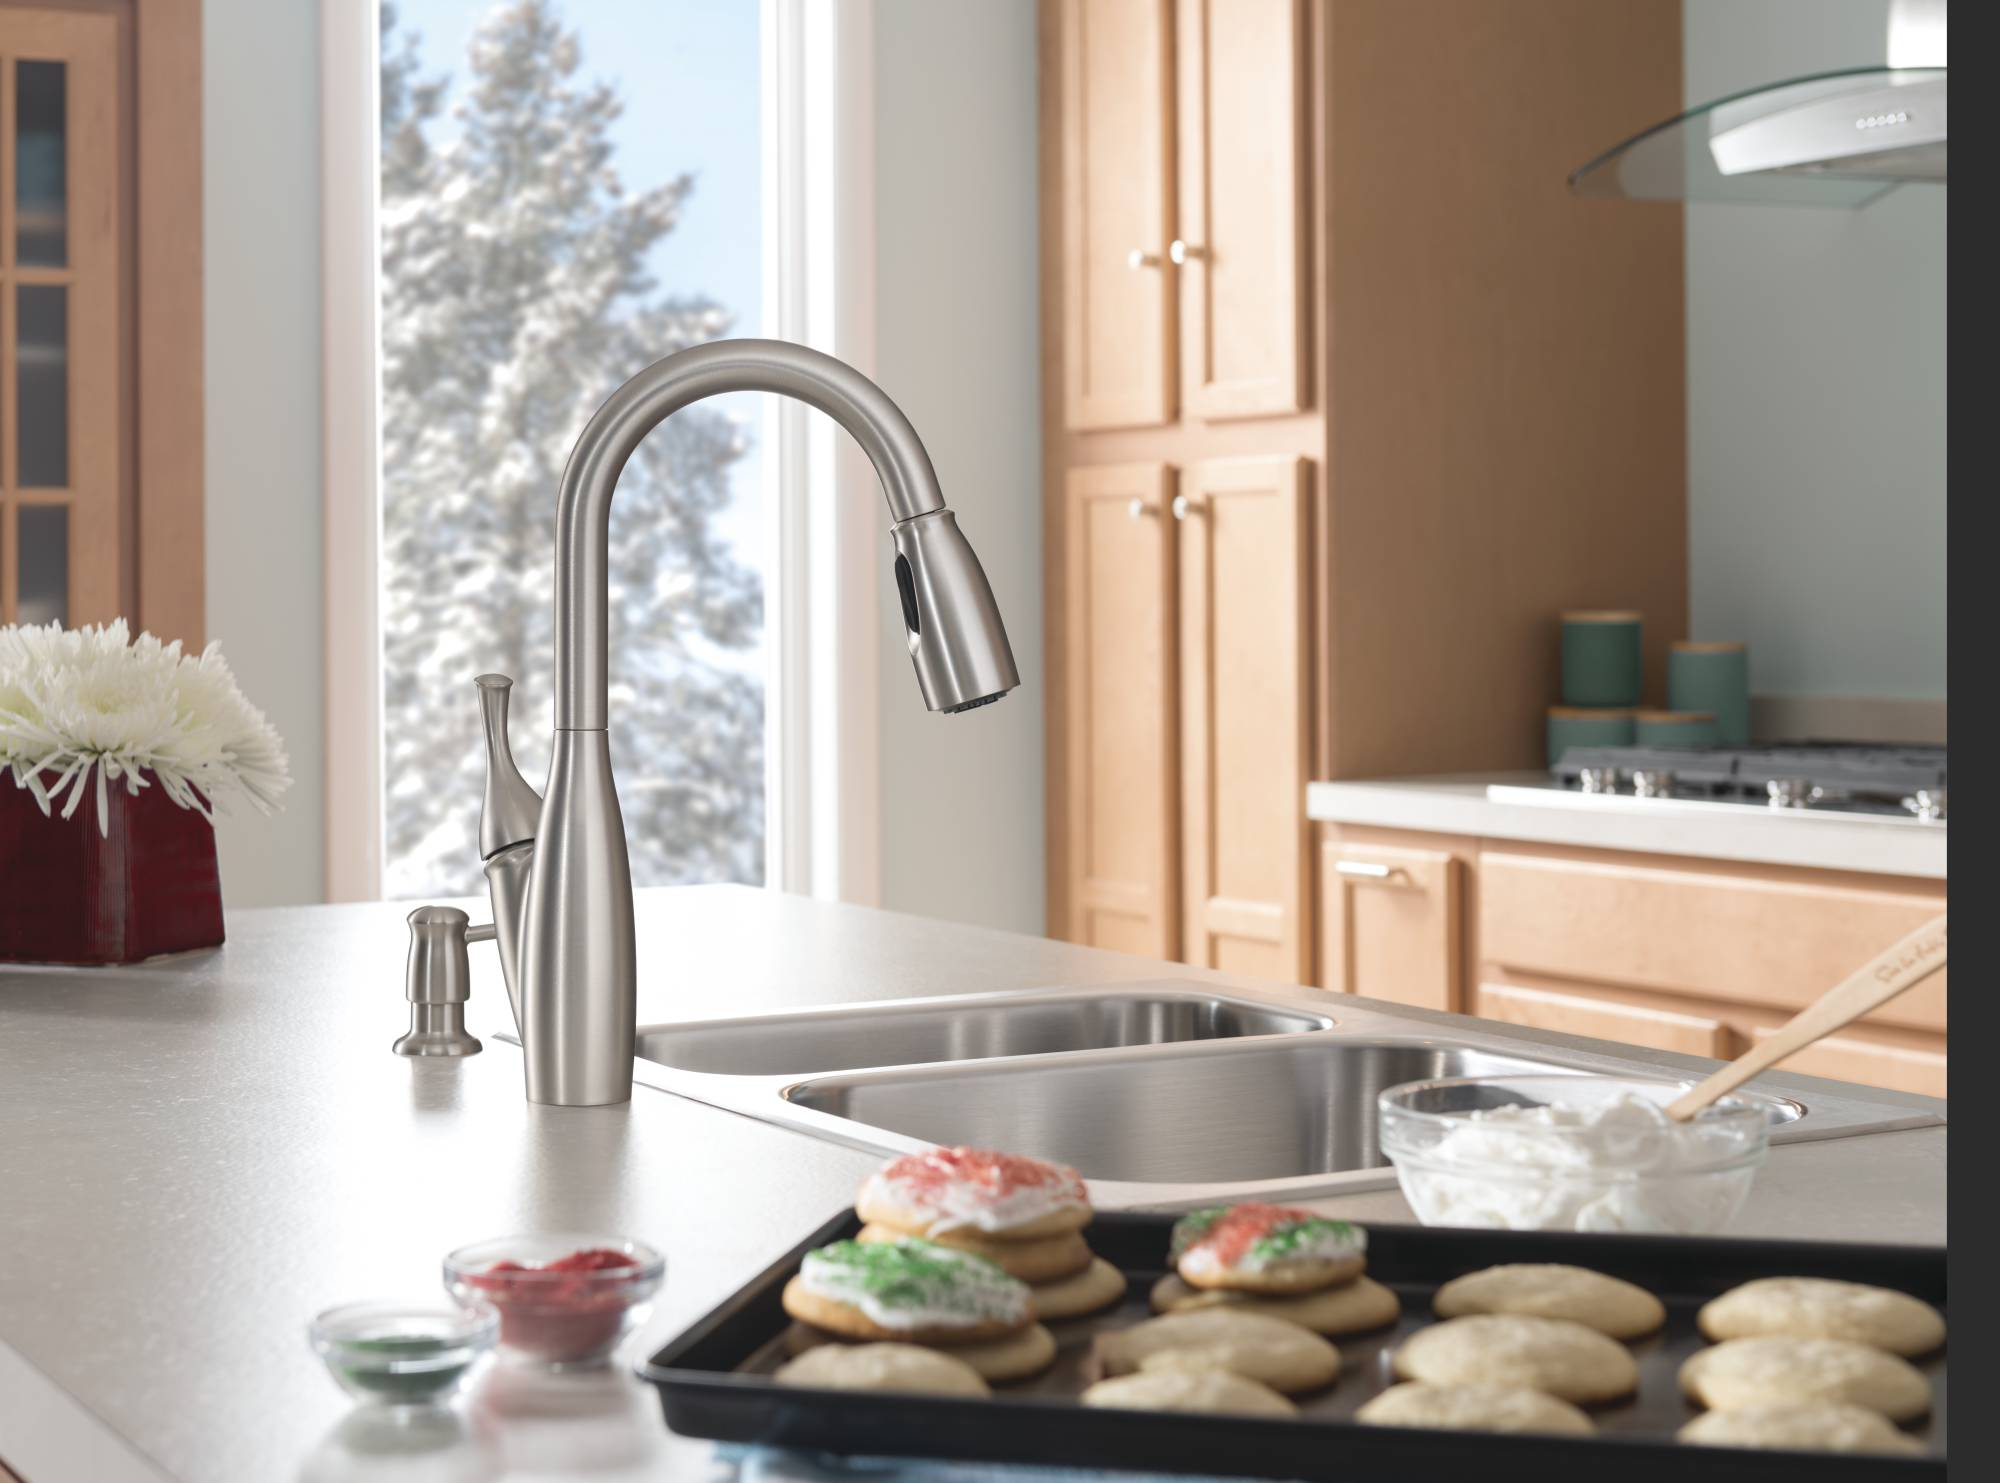 Moen Introduces Three New Kitchen Collections And Expands Existing